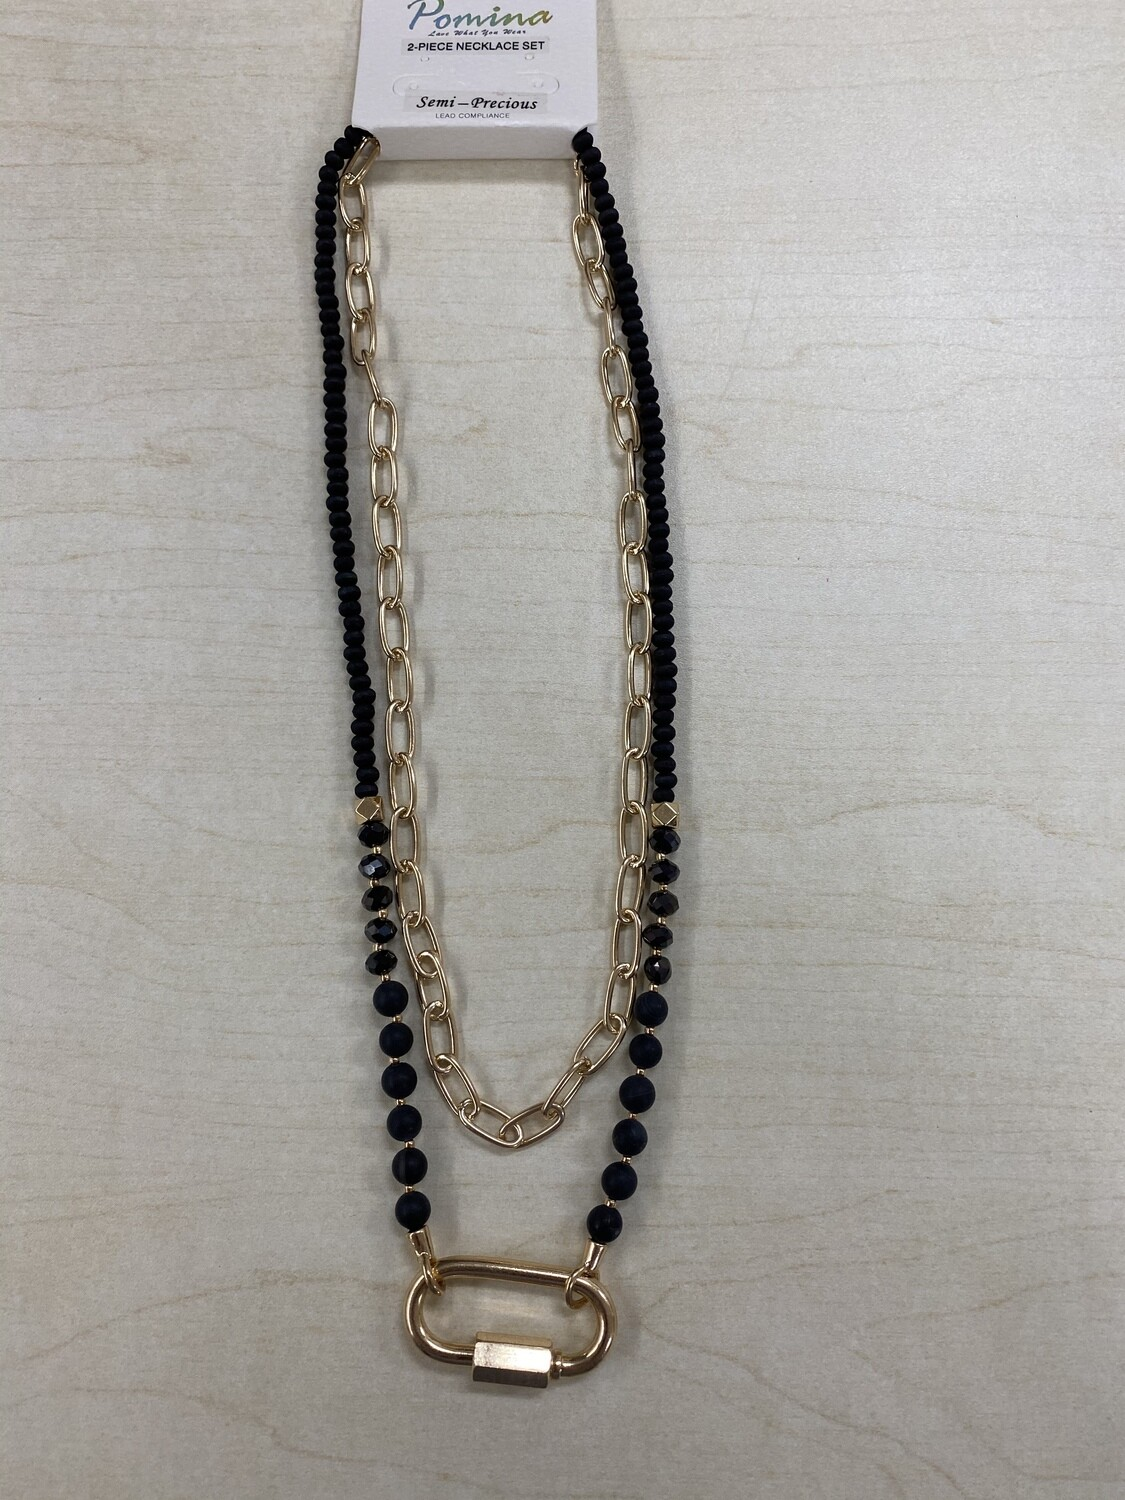 Beaded Chain Two Piece Necklace